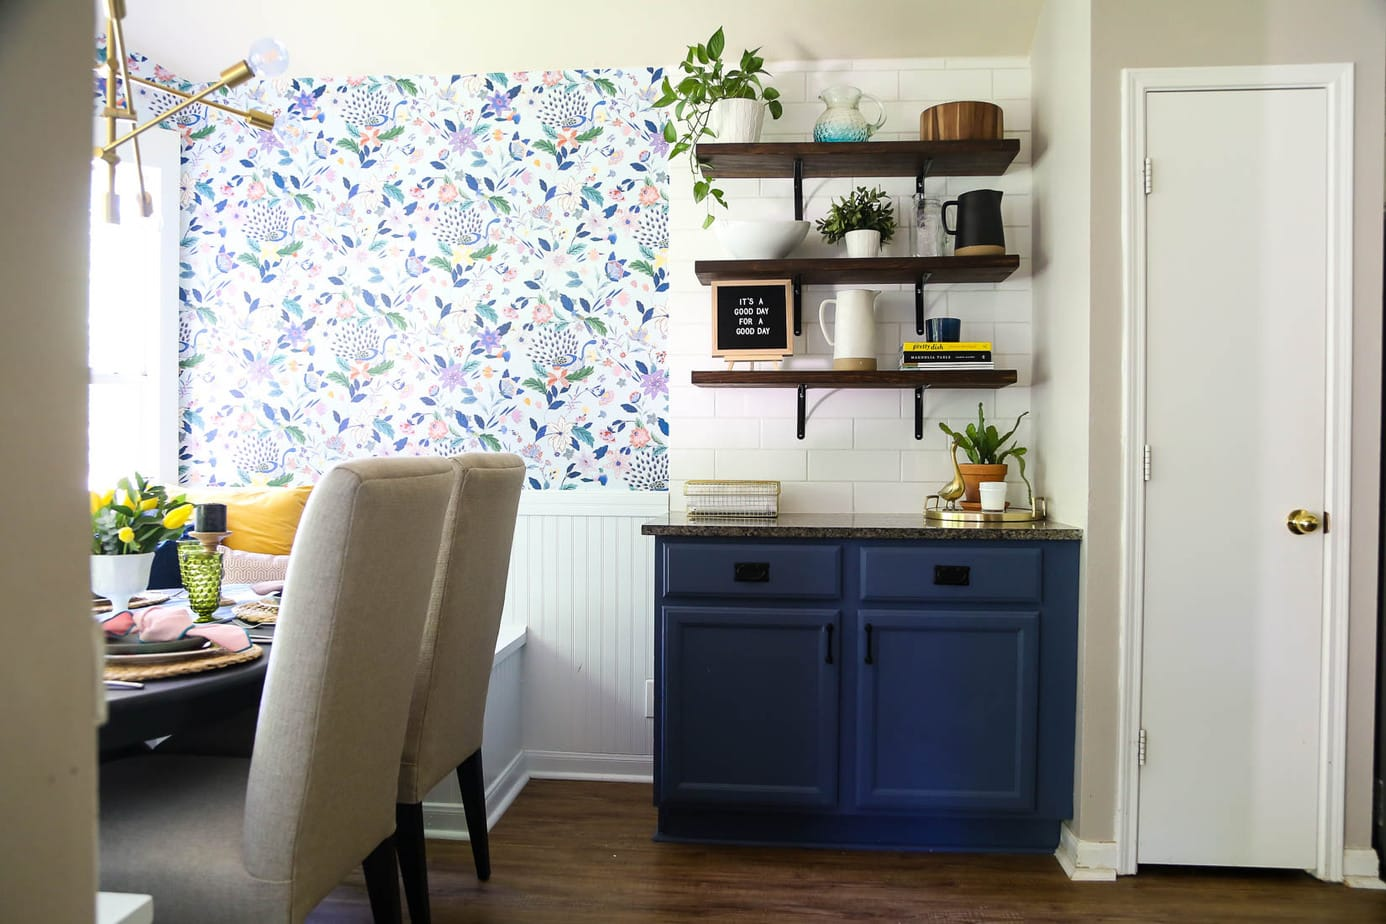 open shelving in kitchen nook